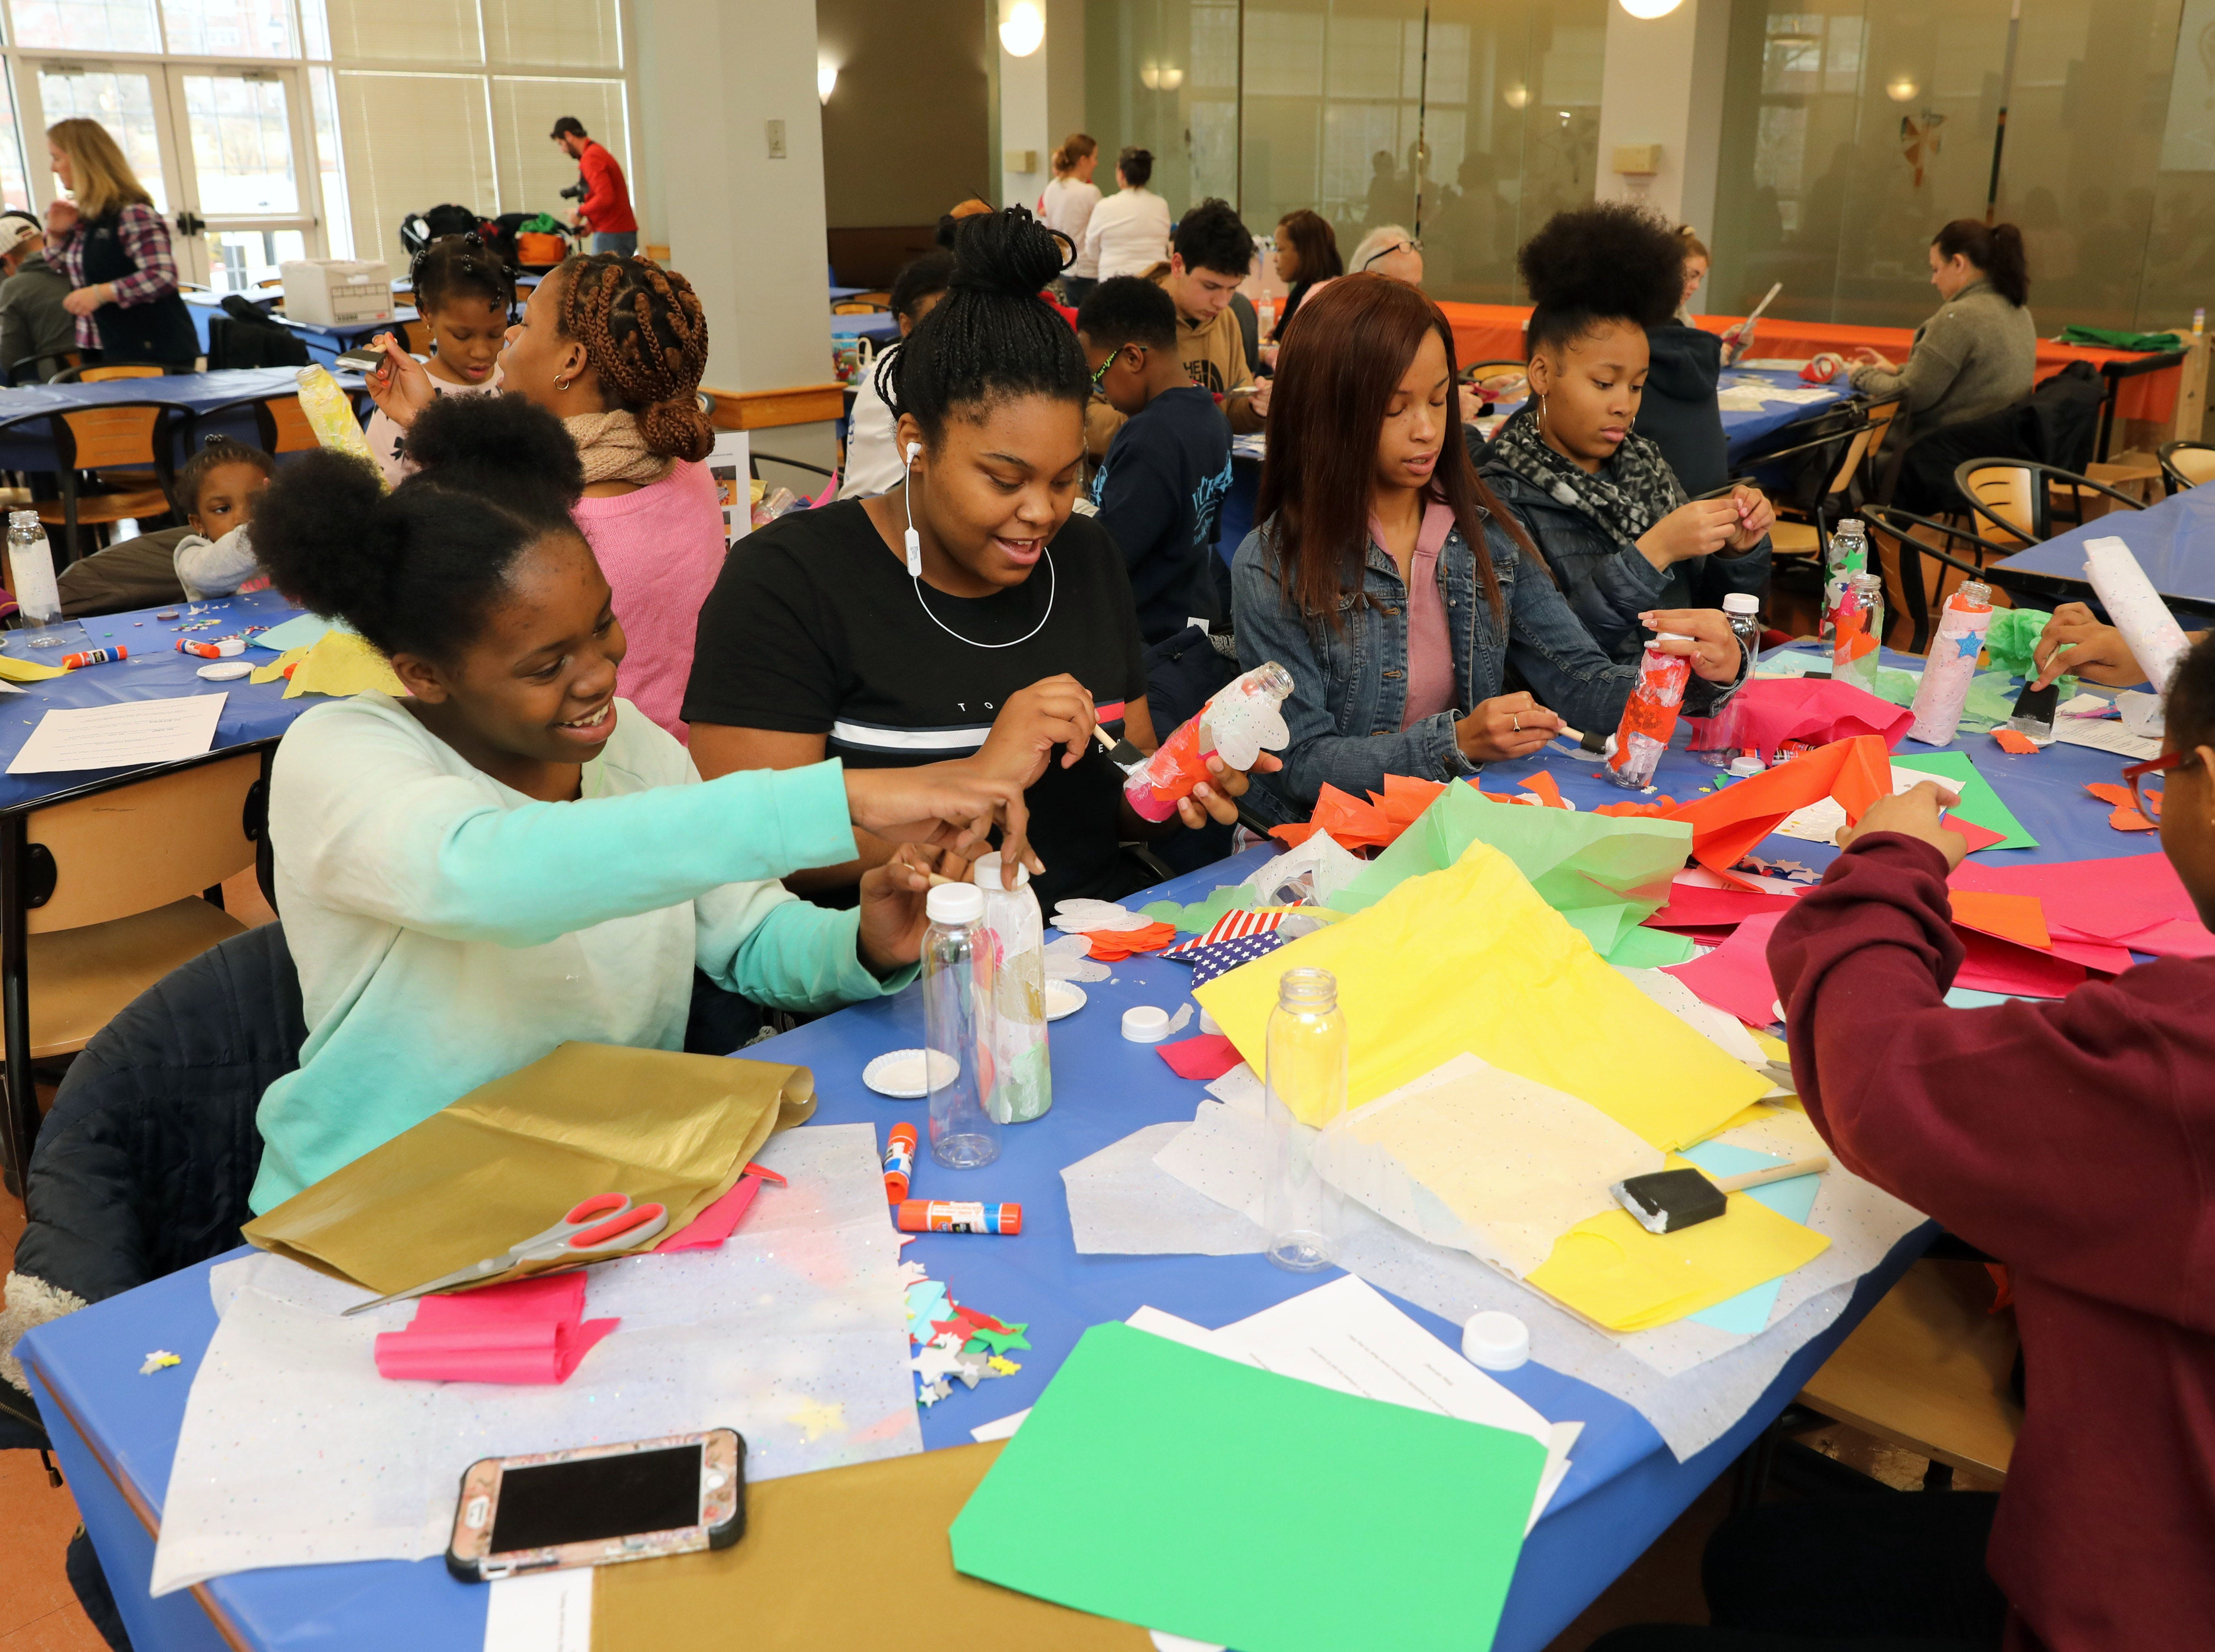 """Volunteers create gratitude jars to benefit """"United for the Troops"""" during the Volunteer New York, Martin Luther King Jr. National Day of Service program at Dominican College in Orangeburg, Jan. 19, 2019."""